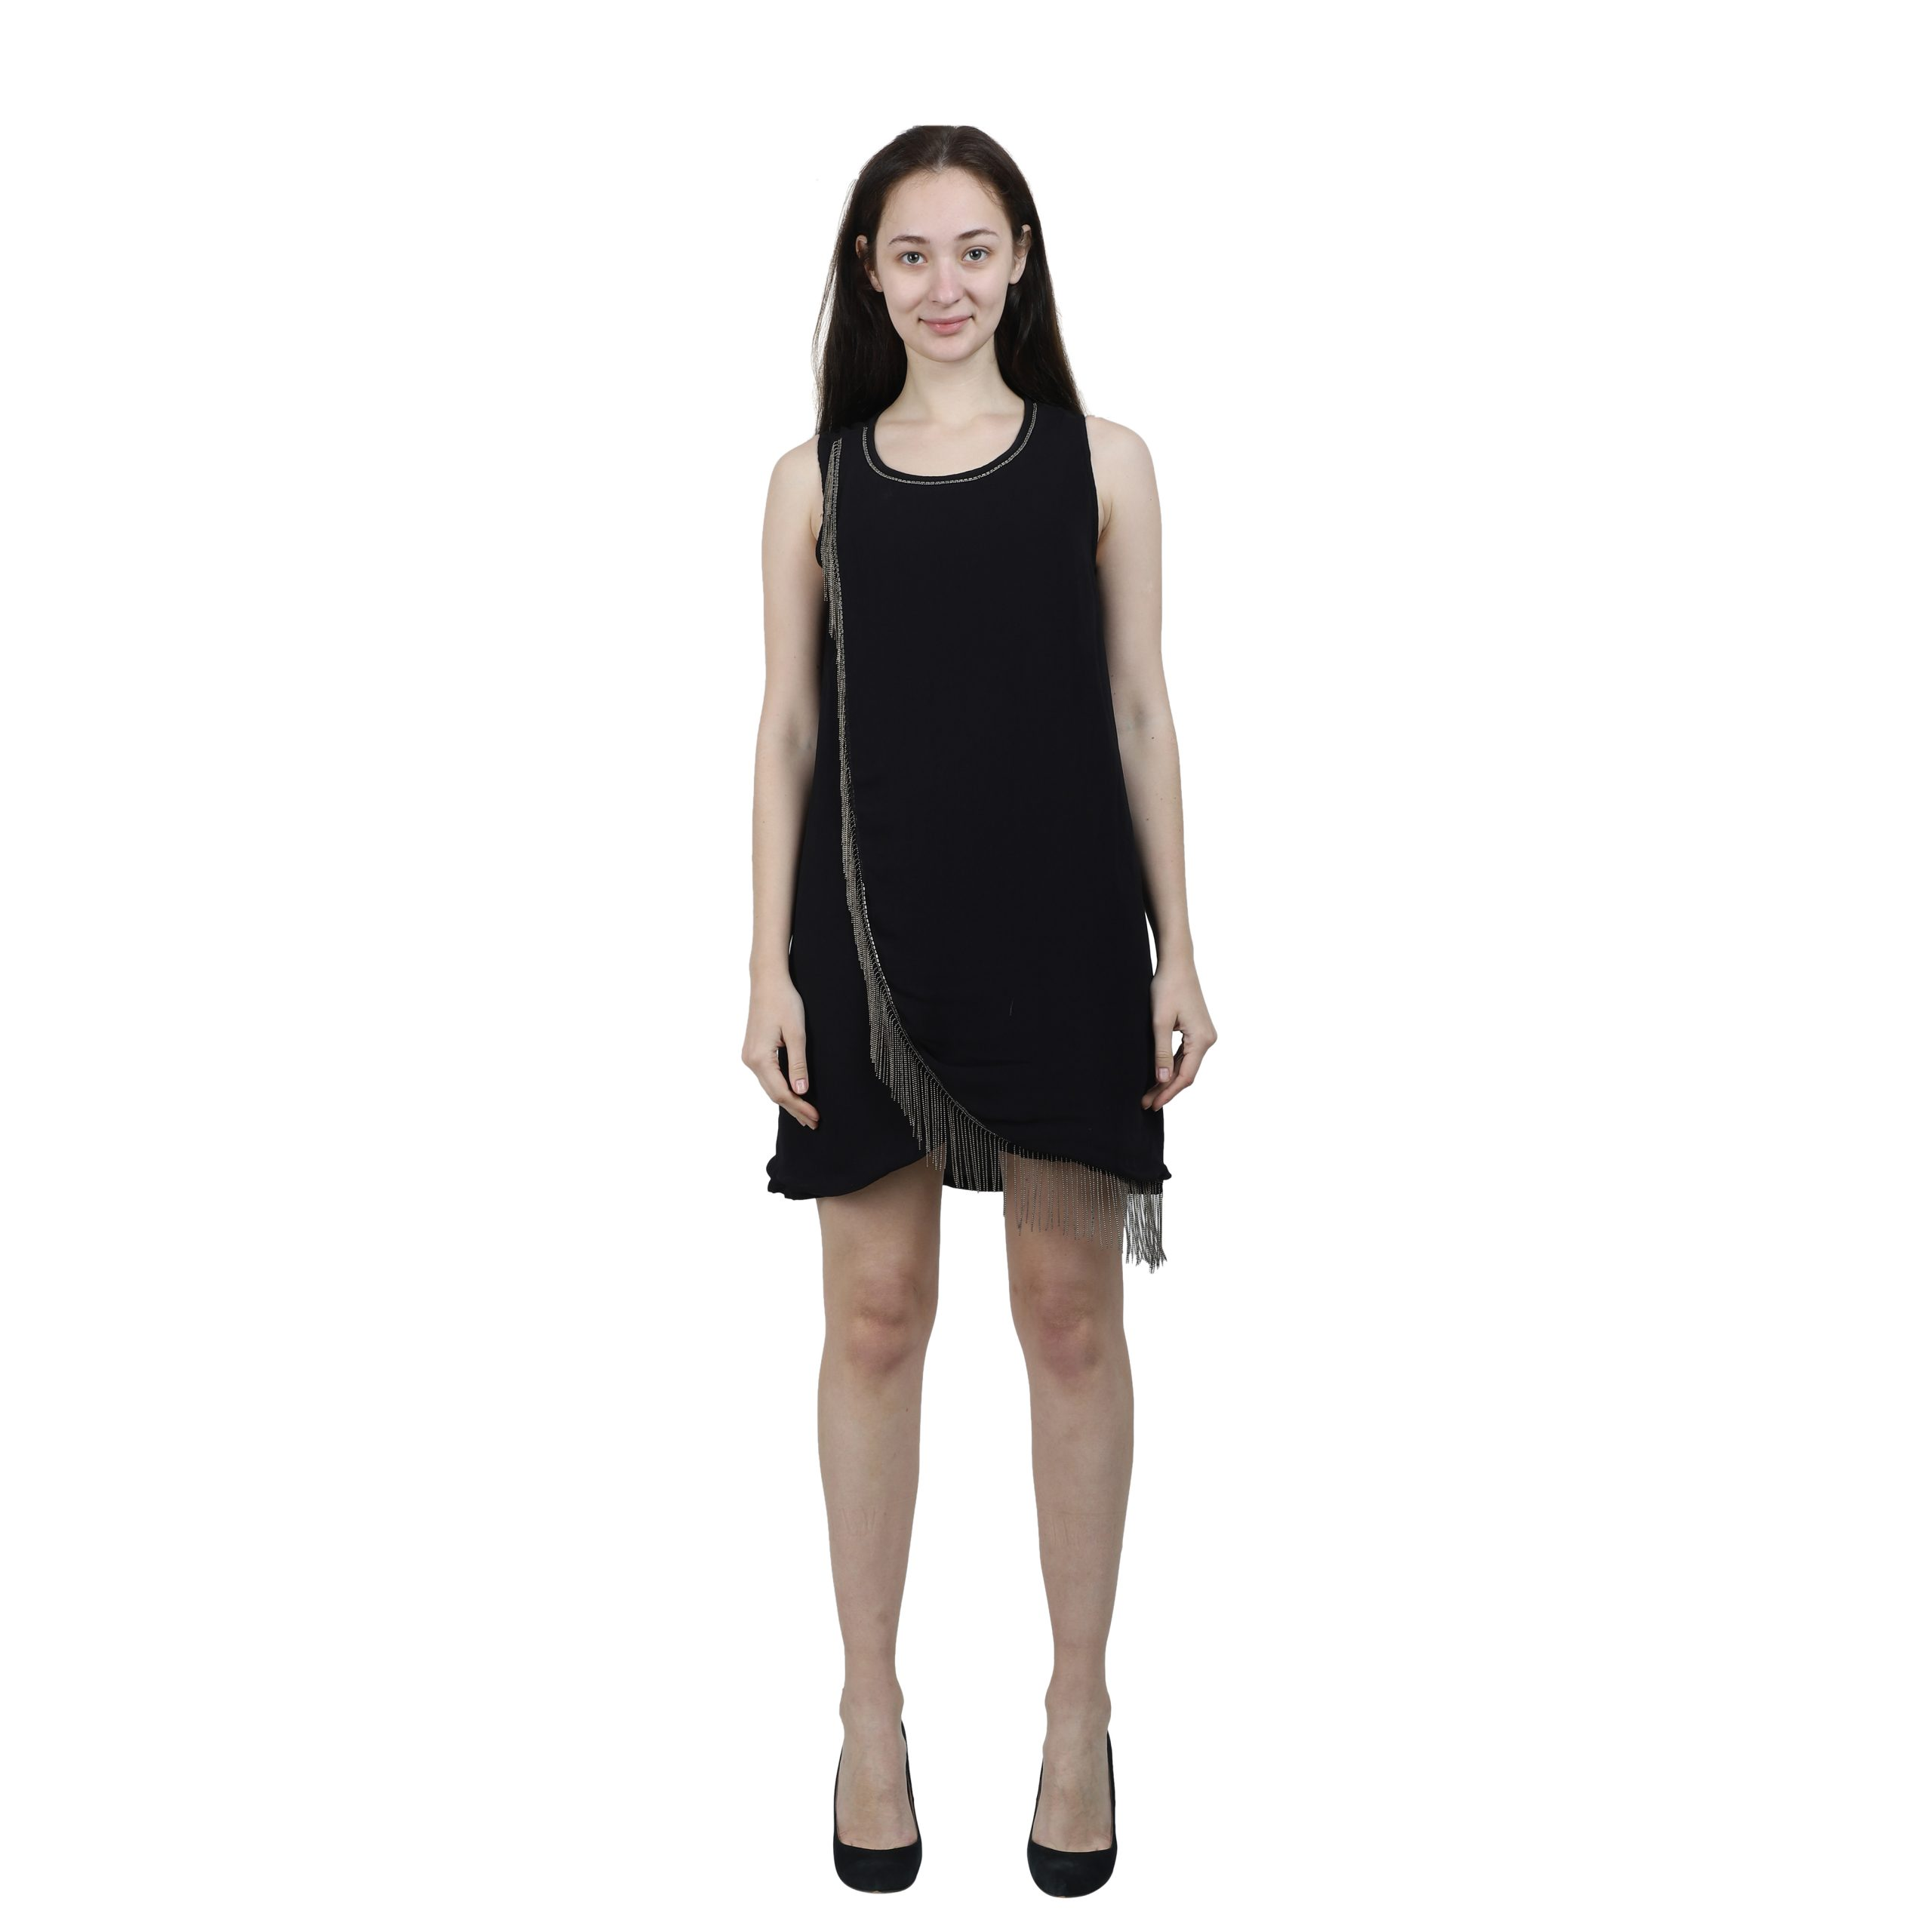 Black Satin Embellished Short Dress for Women